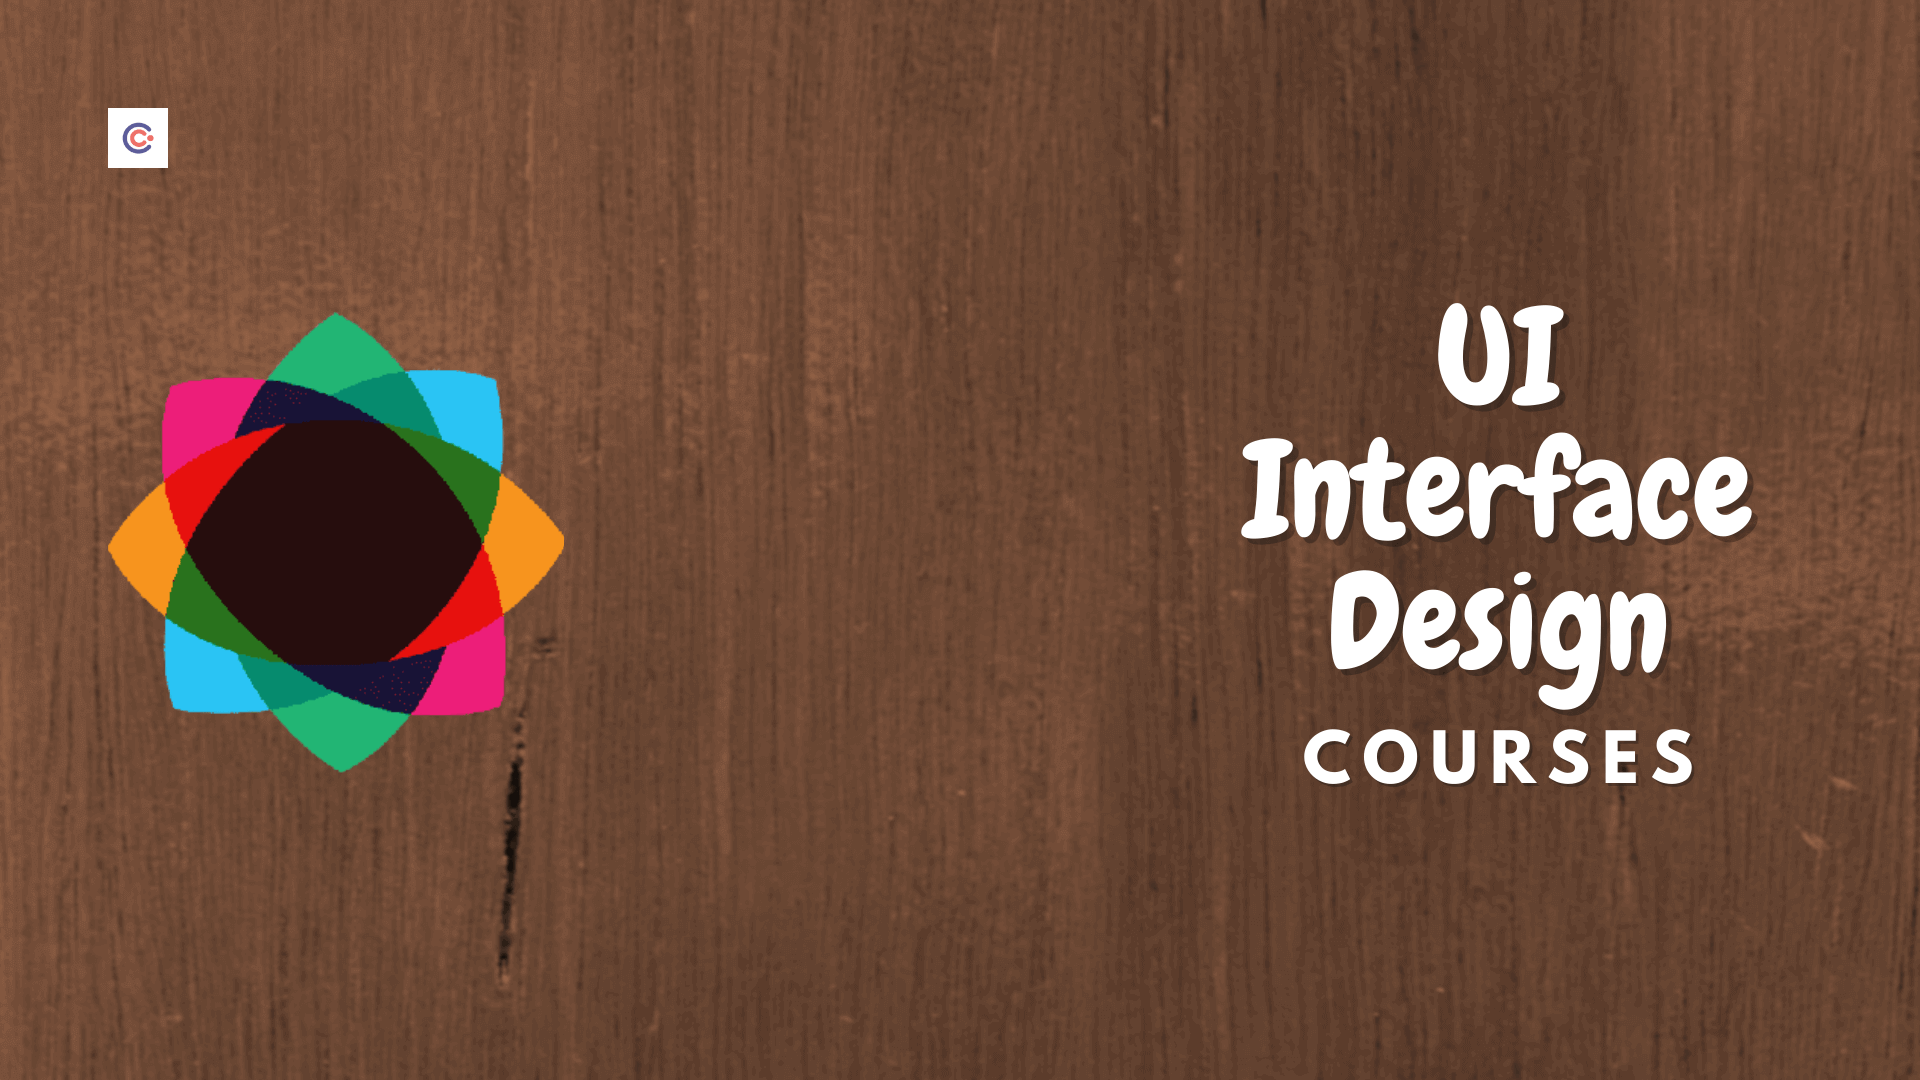 7 Best User Interface Design Courses - Learn UI Designing Online